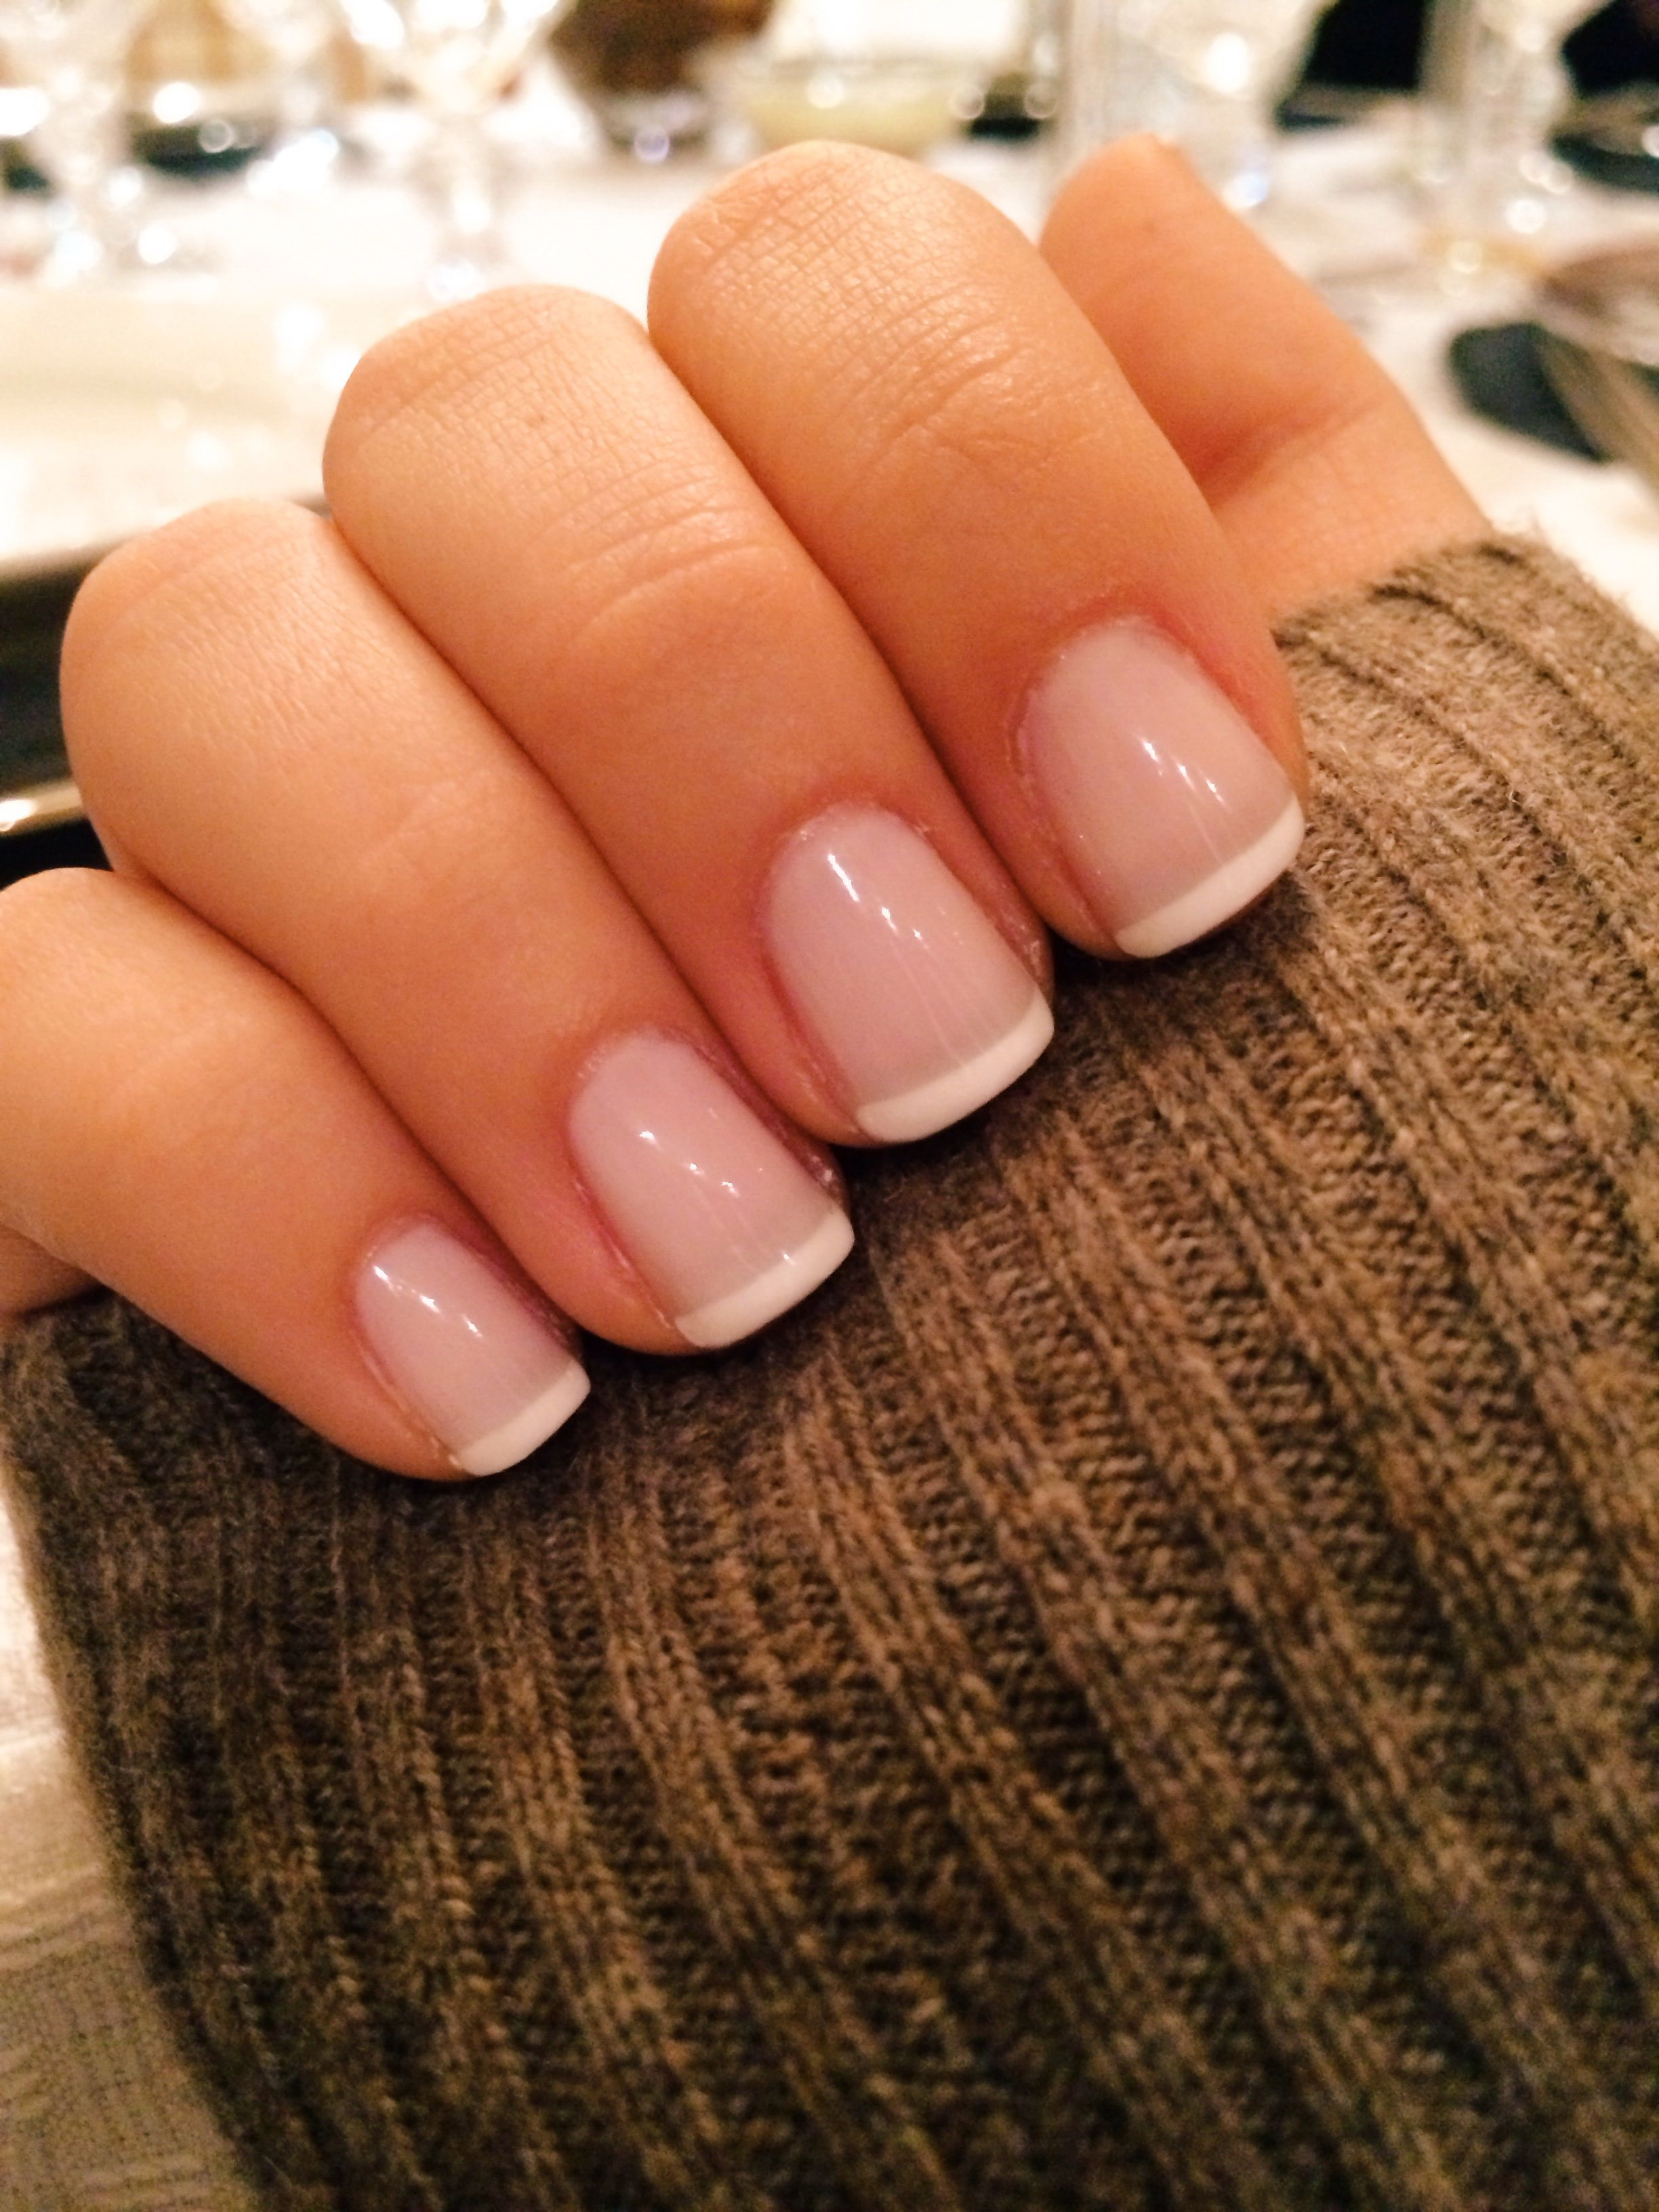 Cly French Manicure Using Waltz By Essie I Love The Length Nothing Longer For Me Just Right